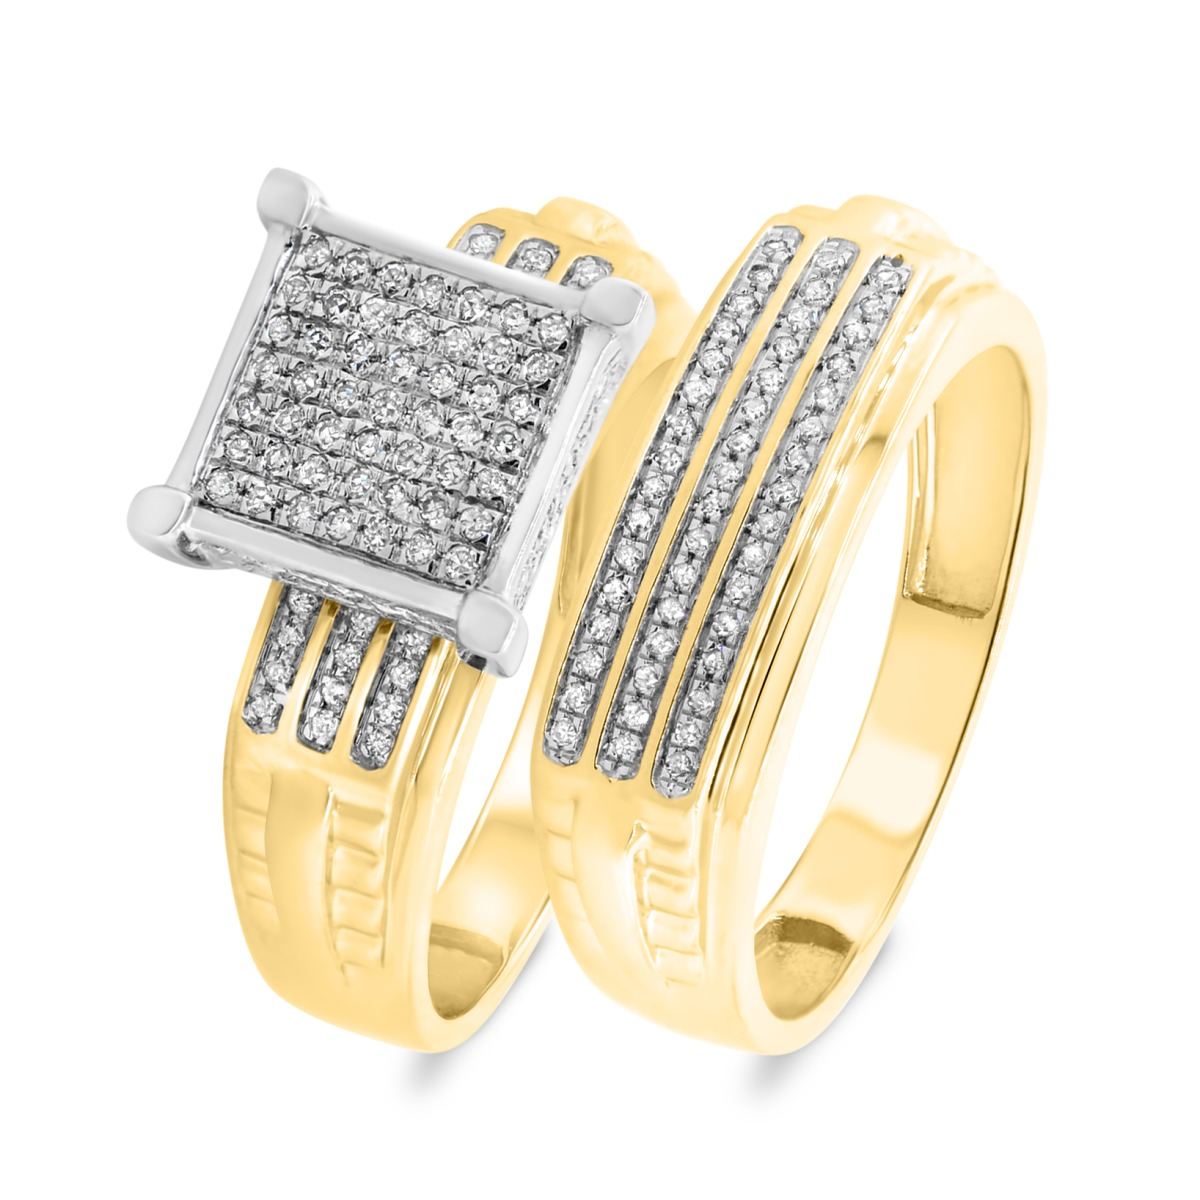 1/3 CT. T.W. Diamond Matching Bridal Ring Set 10K Yellow Gold